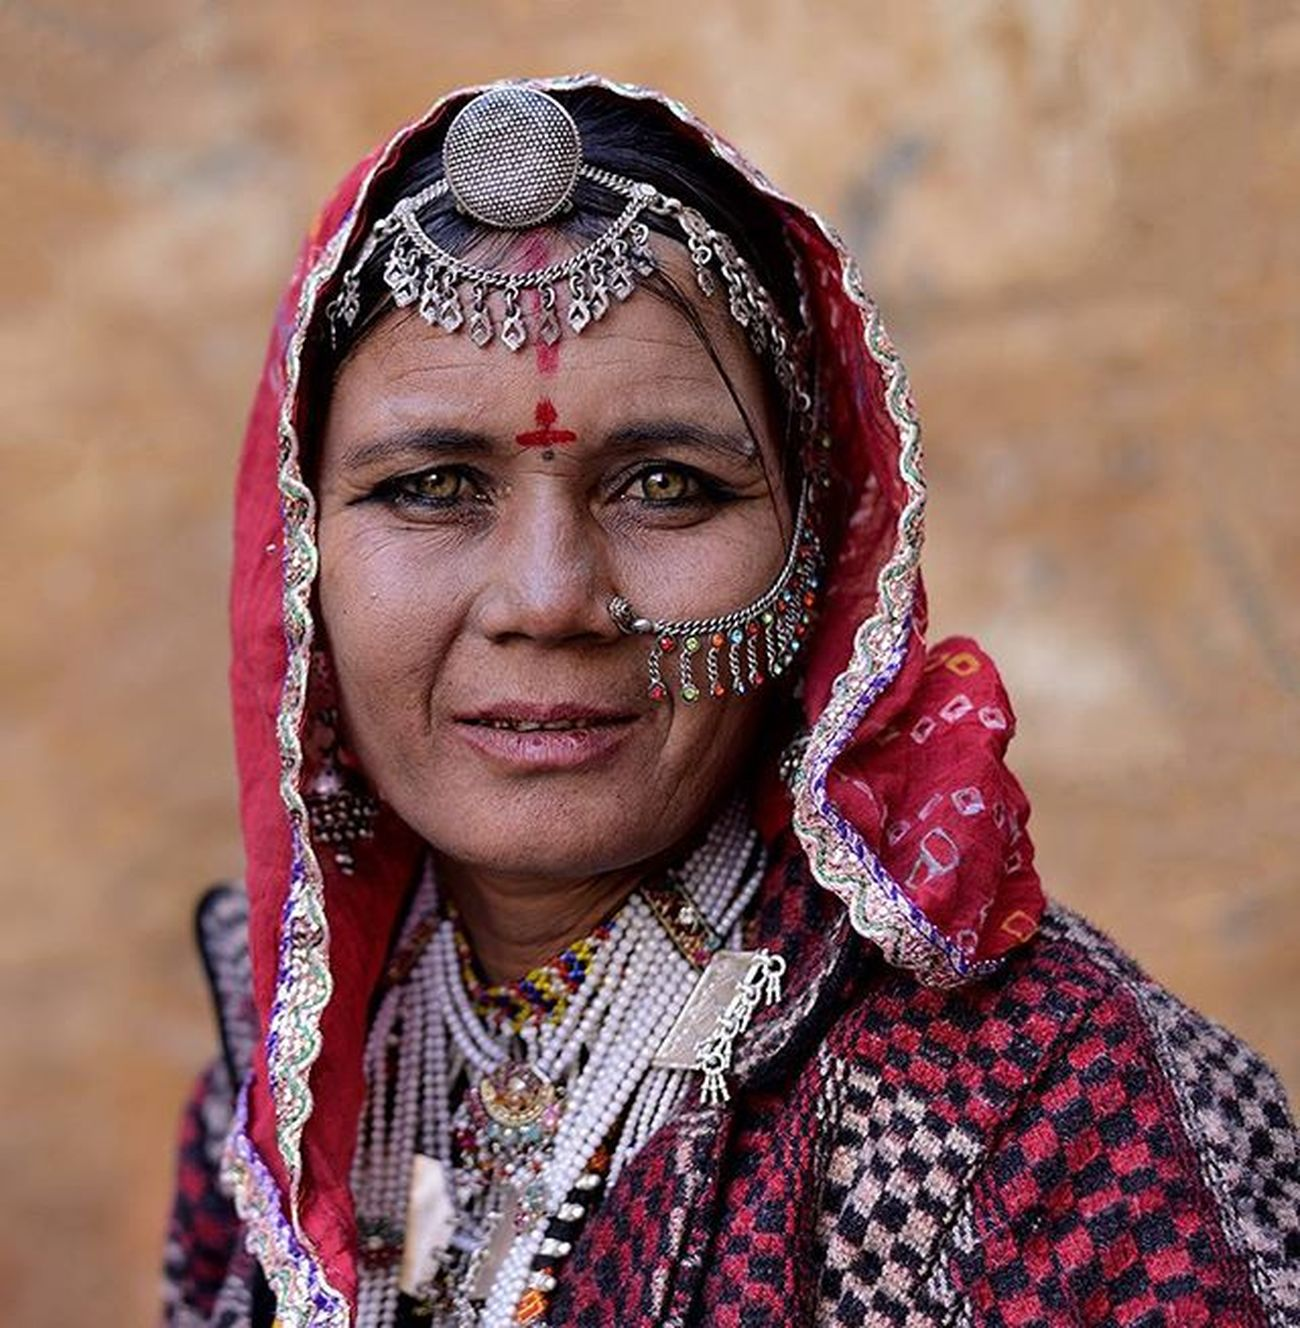 Faces Of Jaisalmer... FacesOfJaisalmer Jaisalmer Rajasthan India ¤ ¤ ¤ ¤ ¤¤¤ Lonelyplanetindia India_gram Igersmood Ig_great_shots Photo_storee_people People_and_world Noidiroma Ig_costaric Grafimx Hayatakarken Igphotoworld Musephoto Dotzsoh Portrait Portraitmood IgersRajasthan Rangeelorajasthan Special_shots IgPodium Ig_clubaward Ig_europe marvelshots ig_photostars mood_family ig_sharepoint ¤¤¤ - - - - - - - - - - - - - - - - - - - - - - - - - - - - - - - - - - - - - - - - - - - - - - - - - - - - - - - - - - - - - - - - - - - - - - - - - - - - - - - - - - - - - - - - - - - - - - - - - - - - - - - - - - - - - - - - - - - - - - - - - - - - - - - - - - - - - - - - - - - - - - - - - - - - - - - - - - - - - - - - - - - -